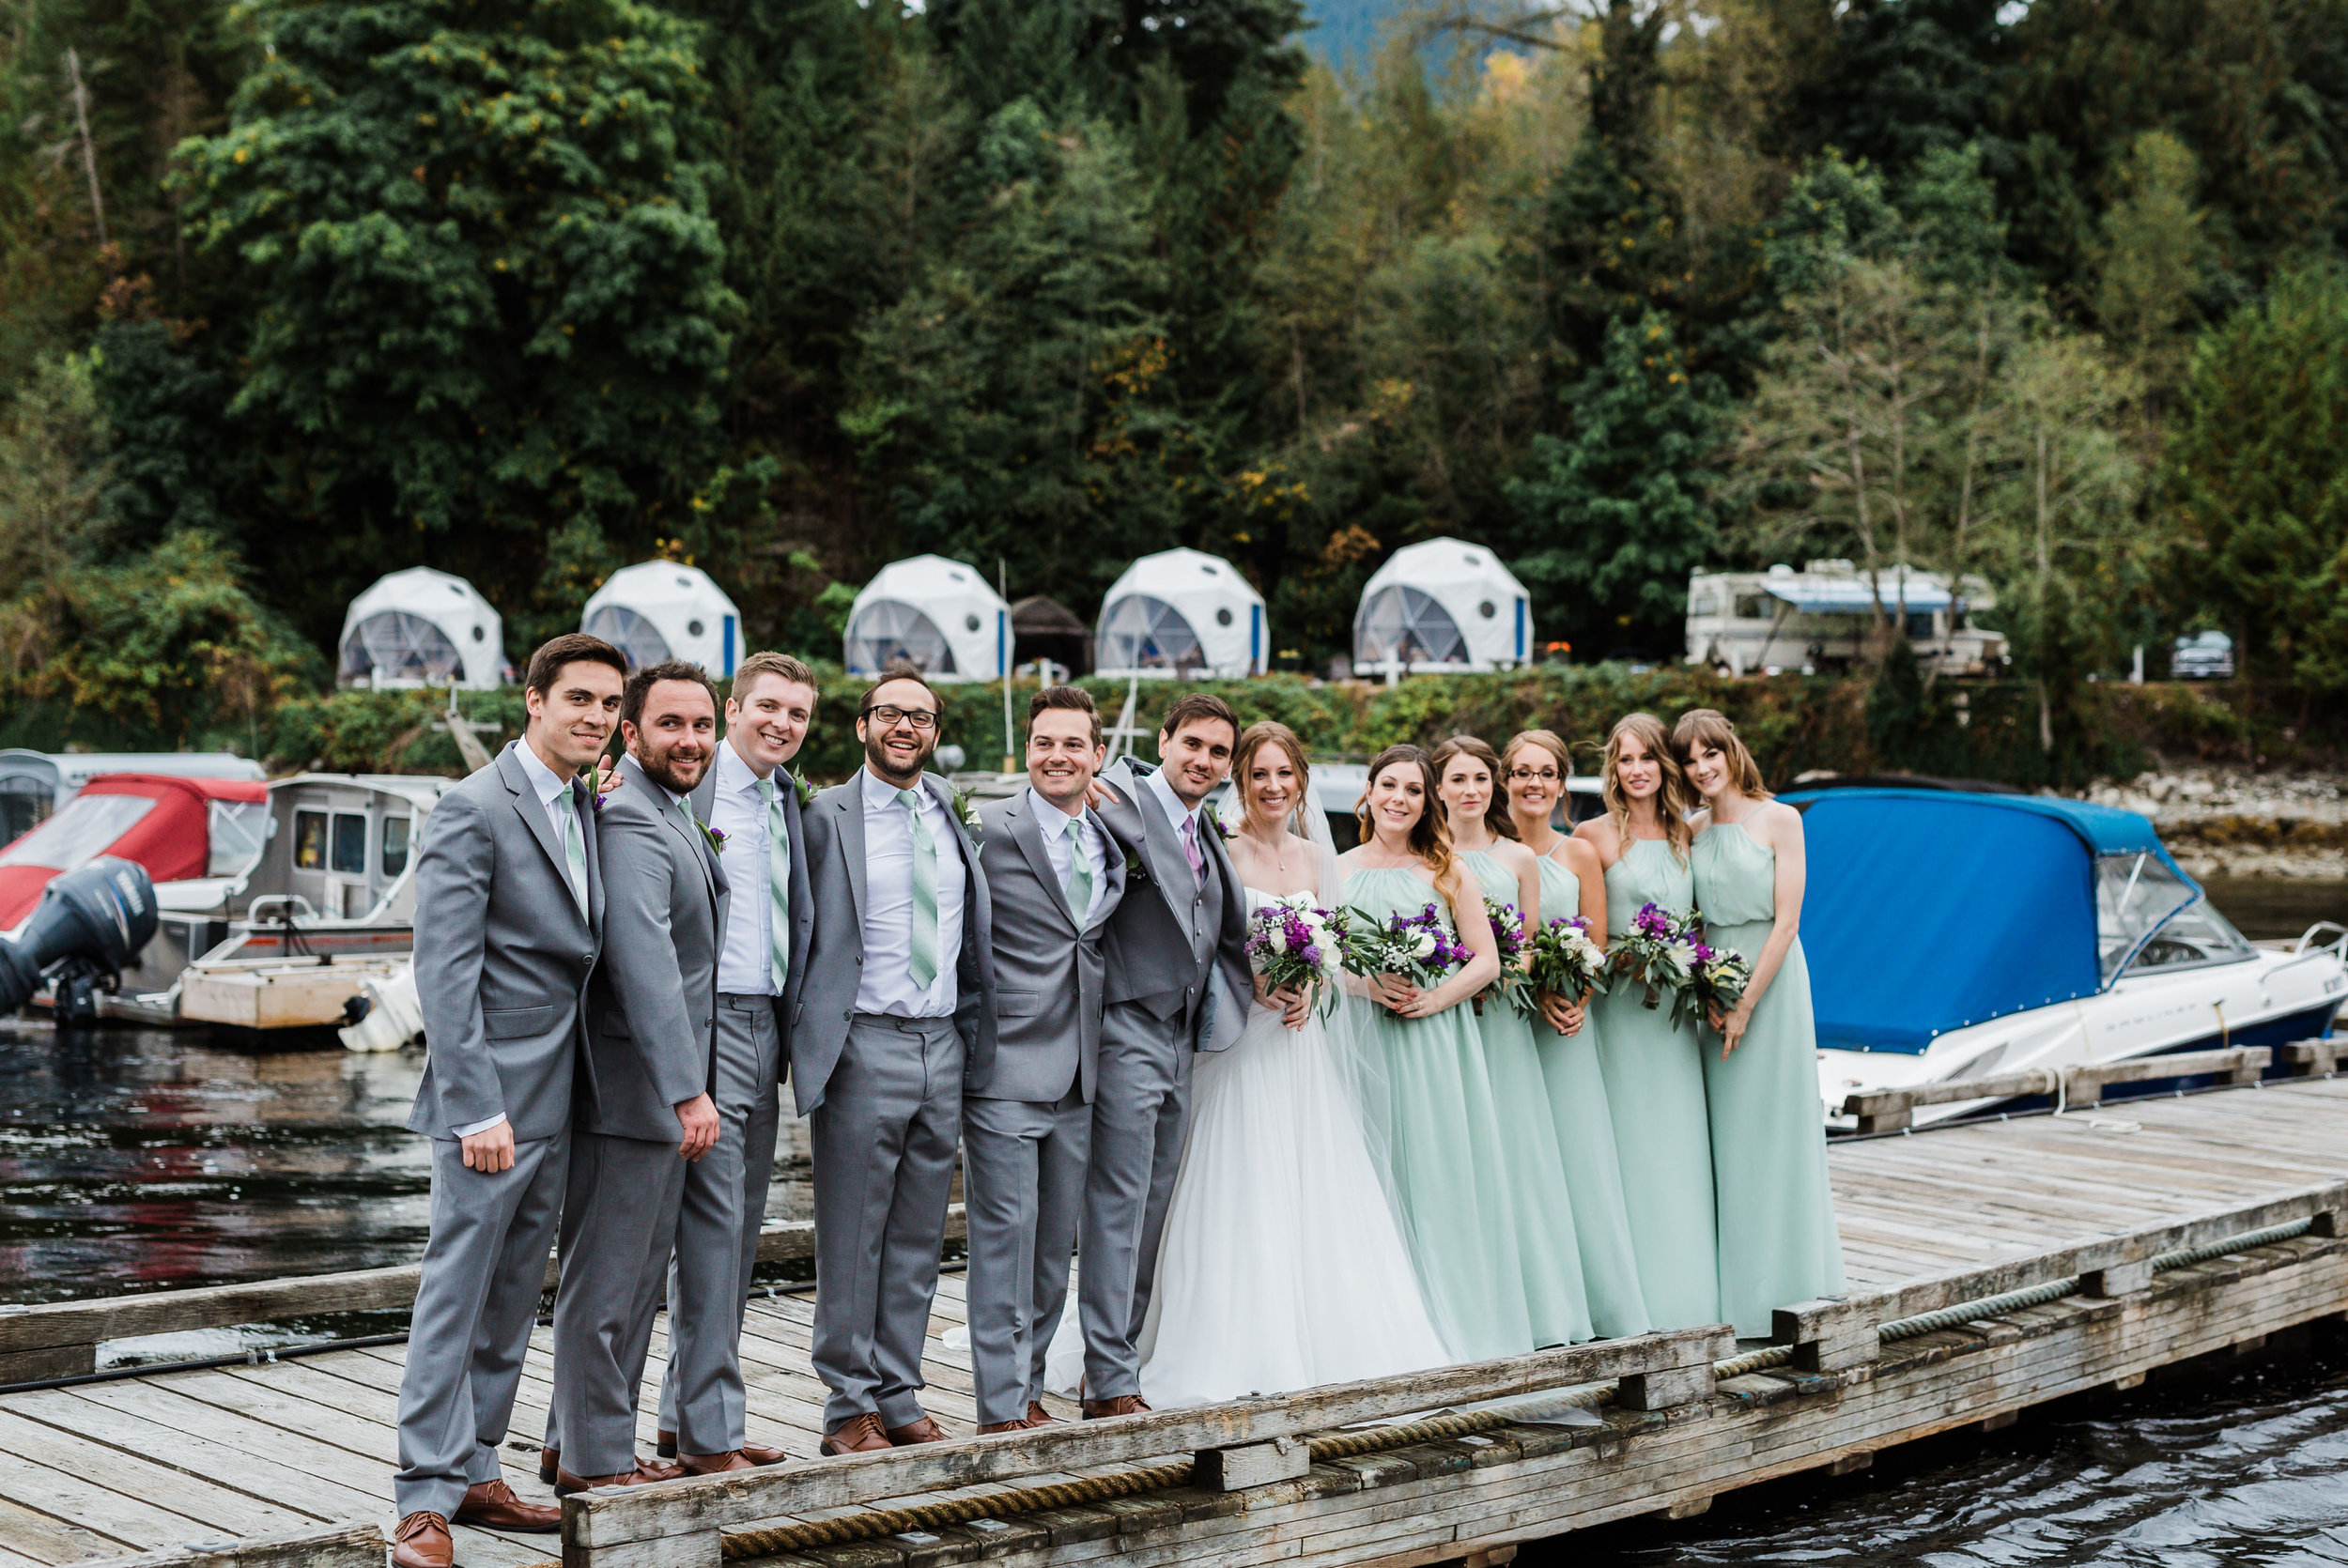 West Coast Wilderness Lodge Wedding Photos - Vancouver Wedding Photographer & Videographer - Sunshine Coast Wedding Photos - Sunshine Coast Wedding Photographer - Jennifer Picard Photography - IMG_6168.jpg